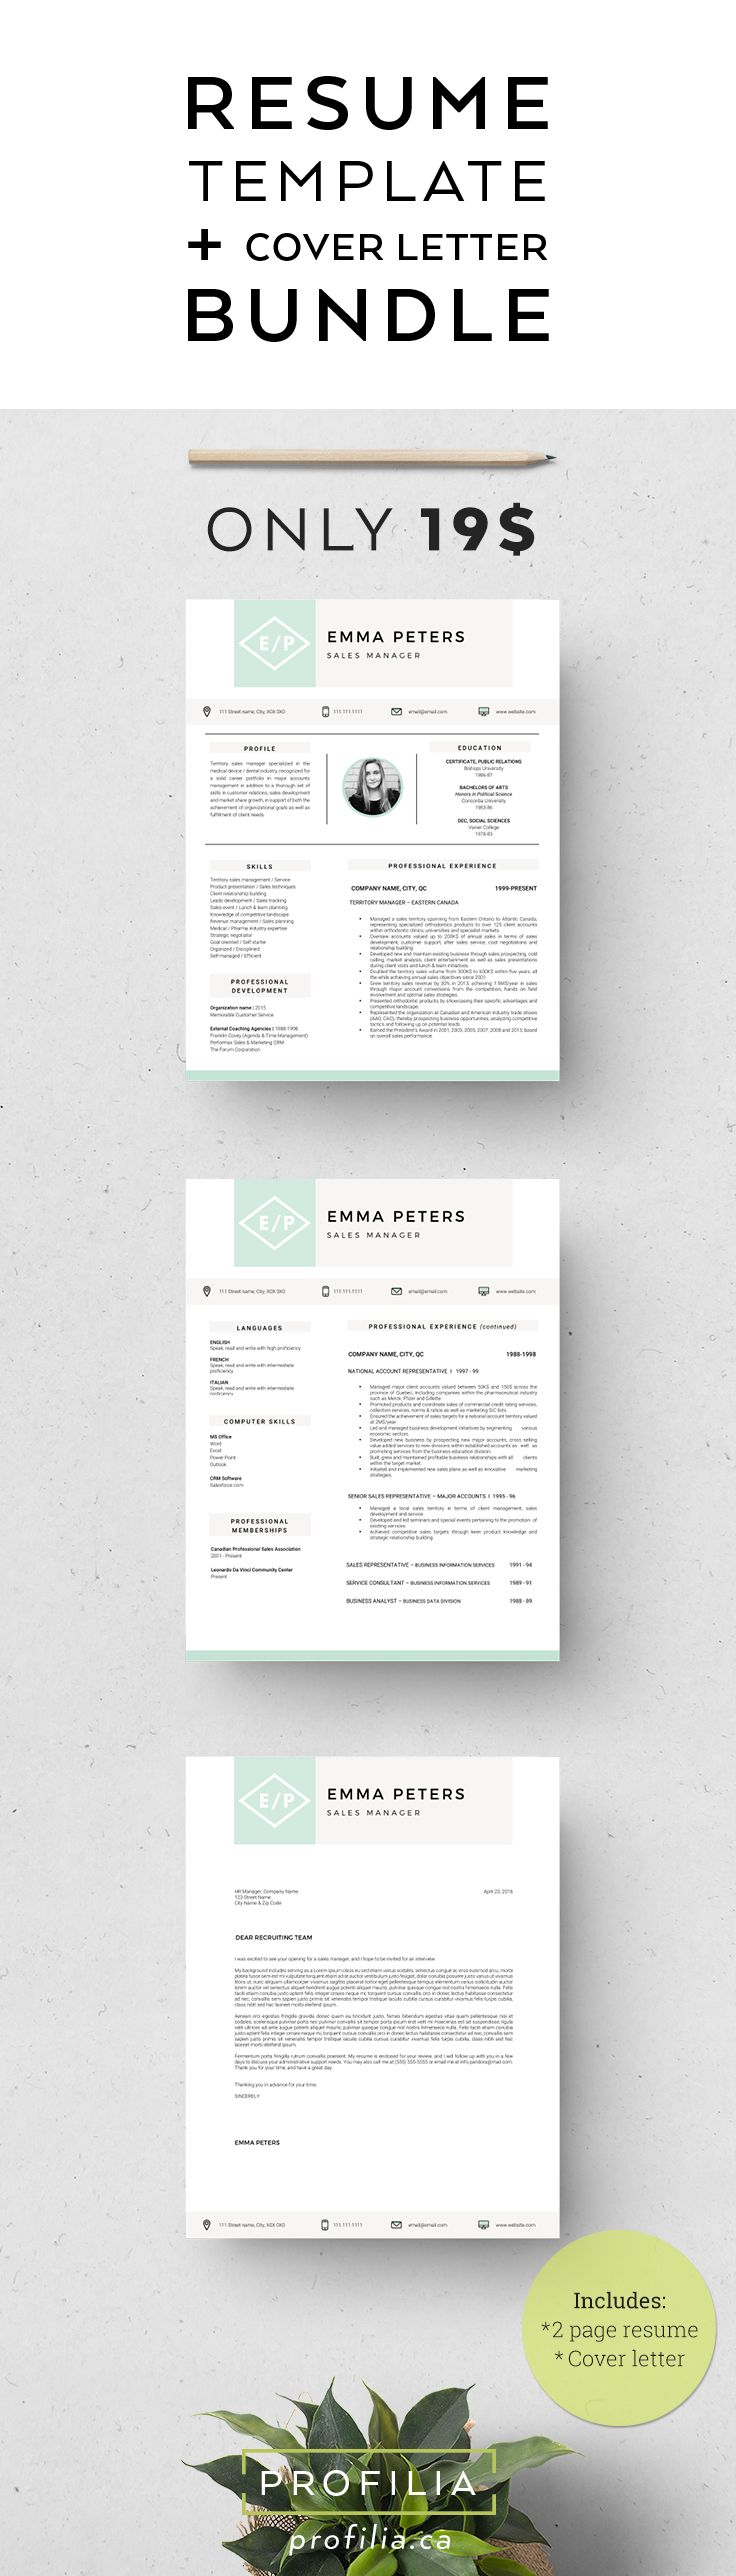 The 25+ Best Cover Letter Format Ideas On Pinterest | Job Cover Letter  Examples, Cover Letter Format Examples And Resume Cover Letter Examples  Cover Letter For Resume Template